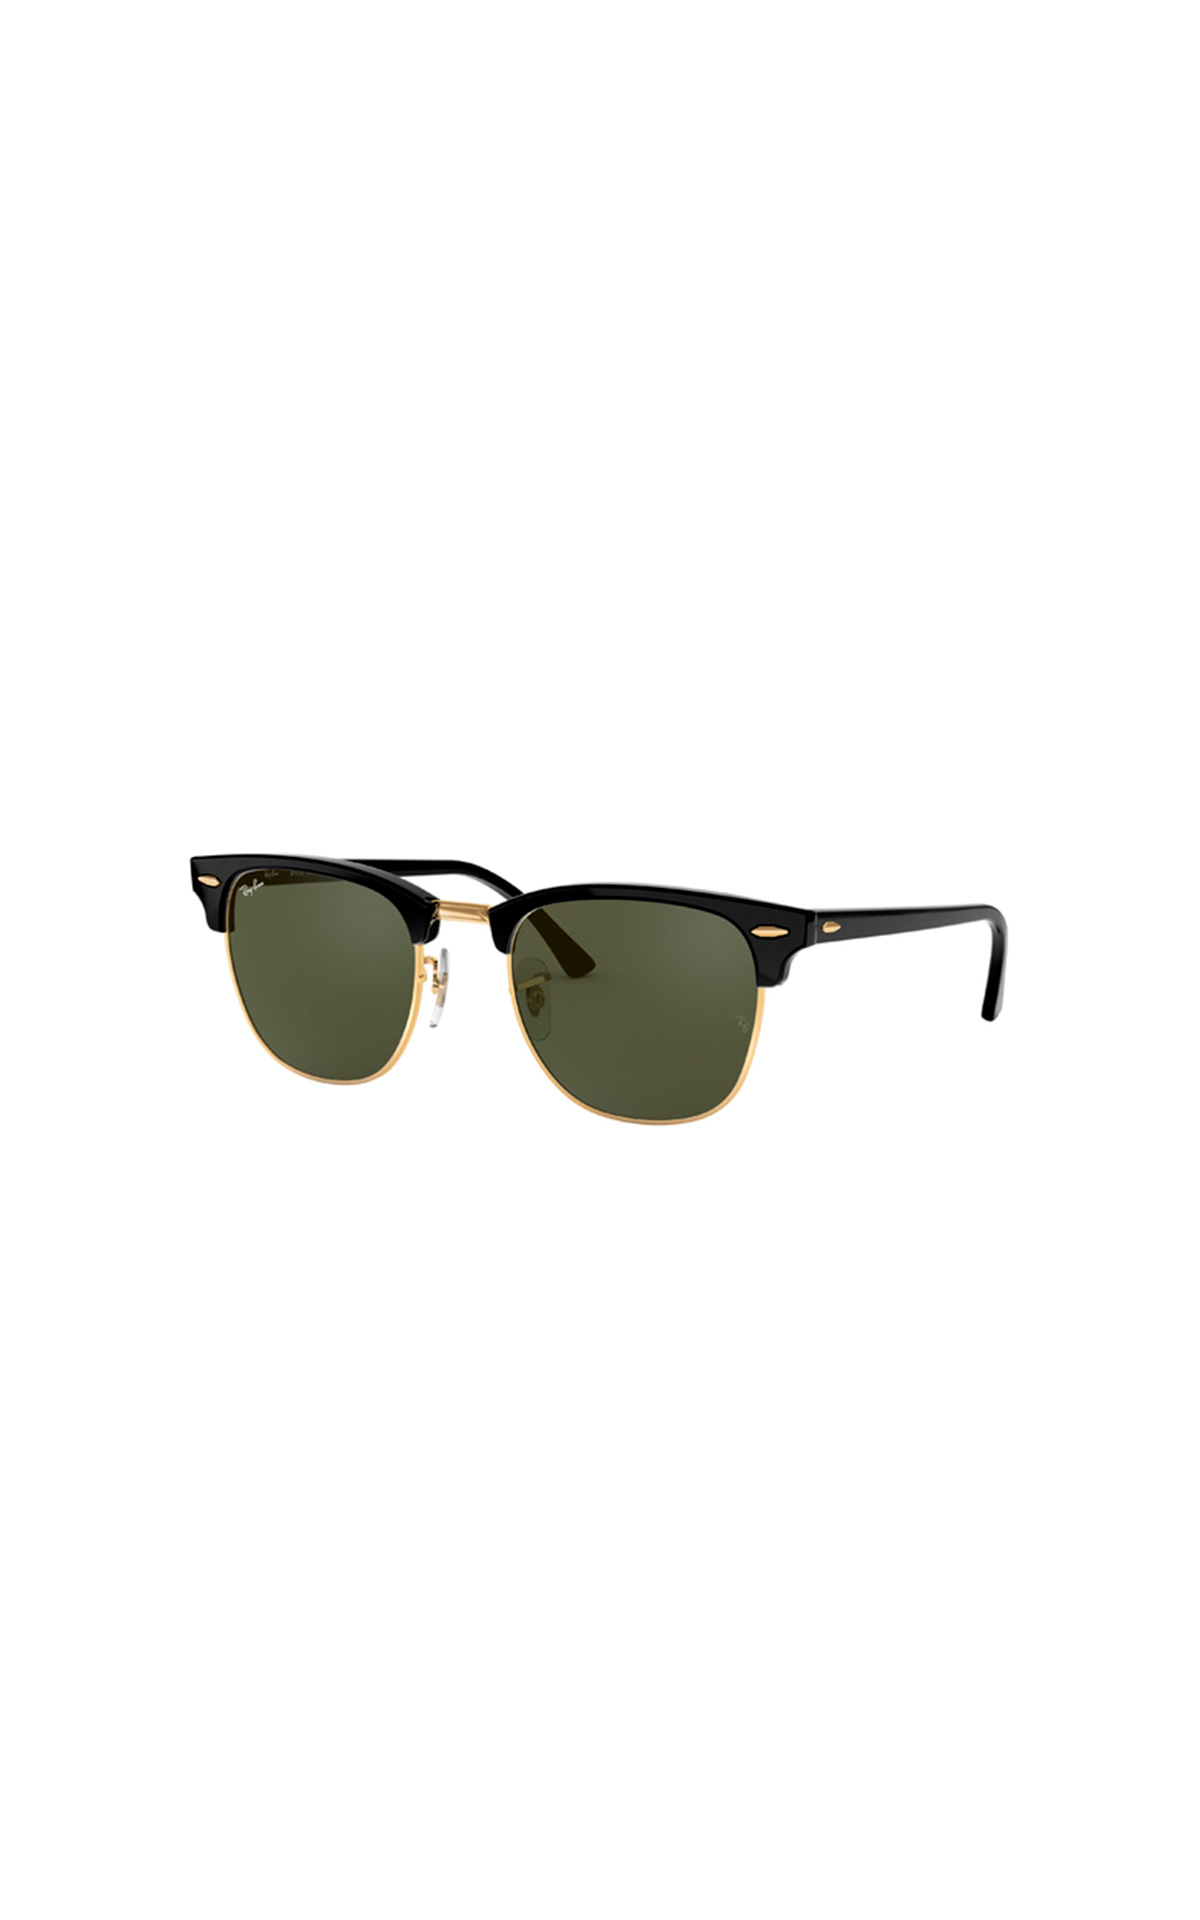 Ray-Ban sunglasses Sunglass Hut